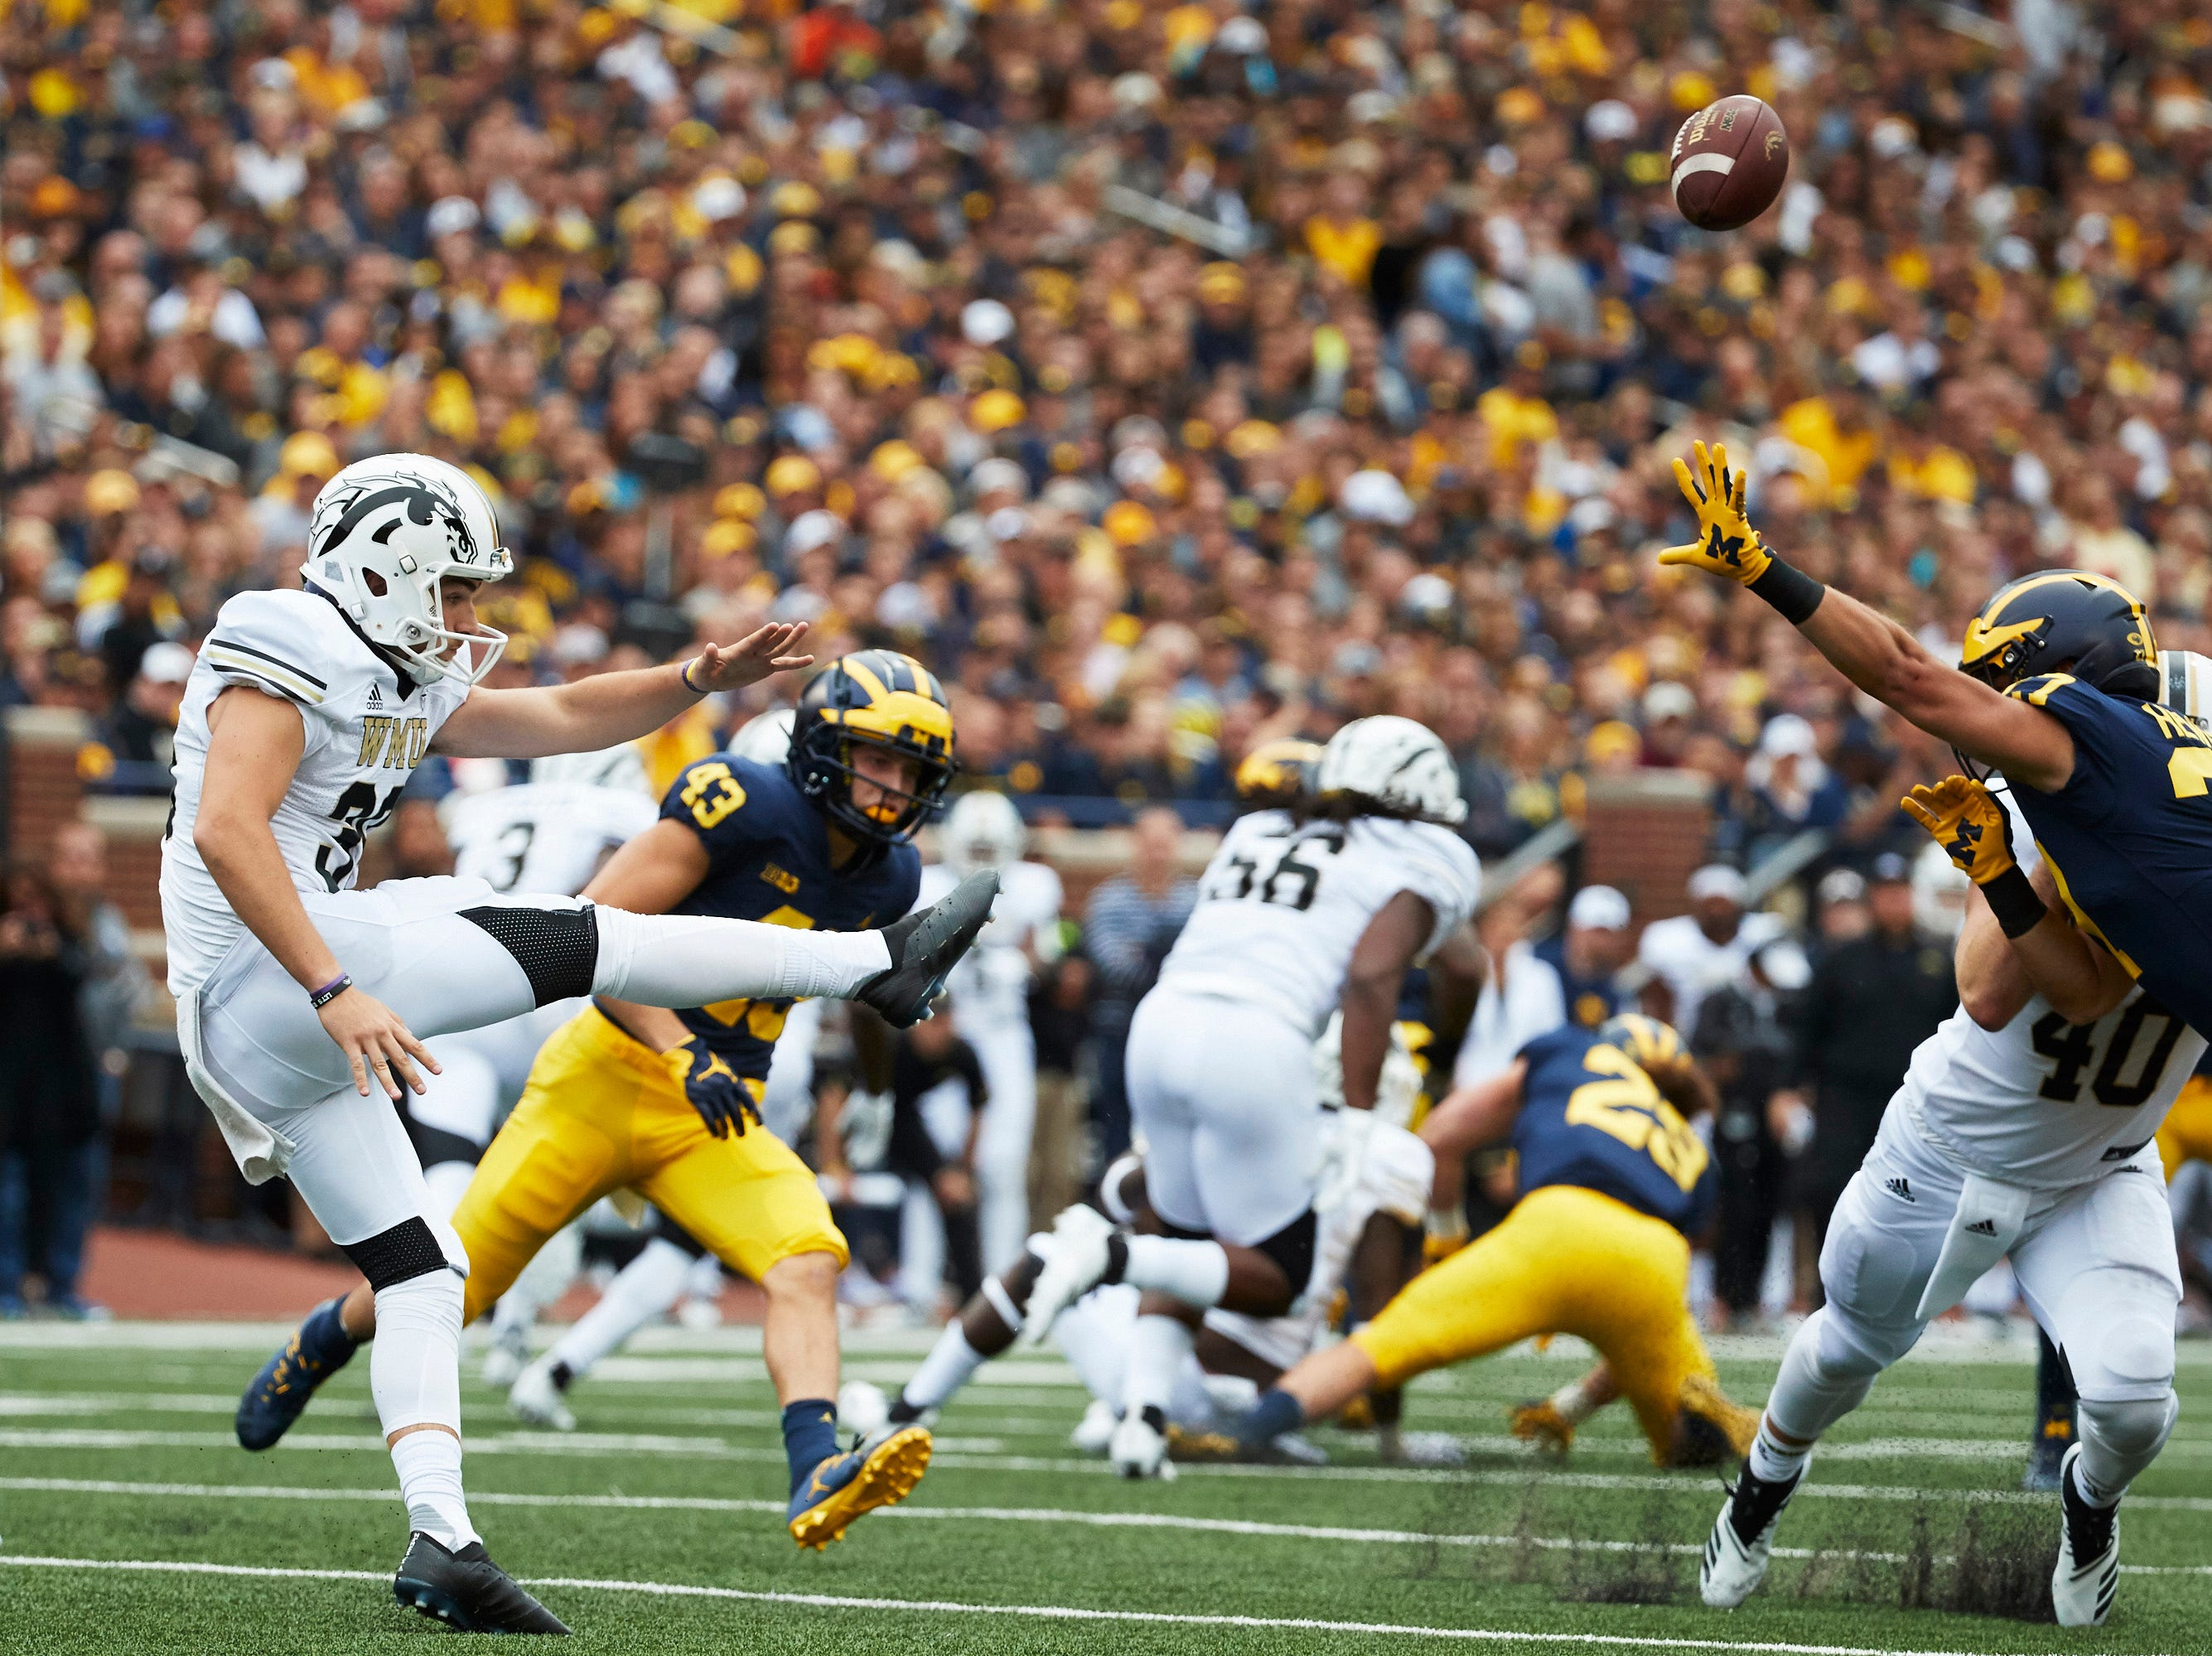 Sep 8, 2018; Ann Arbor, MI, USA; Western Michigan Broncos punter Nick Mihalic (39) punts over Michigan Wolverines running back Joe Hewlett (27) in the first half at Michigan Stadium. Mandatory Credit: Rick Osentoski-USA TODAY Sports